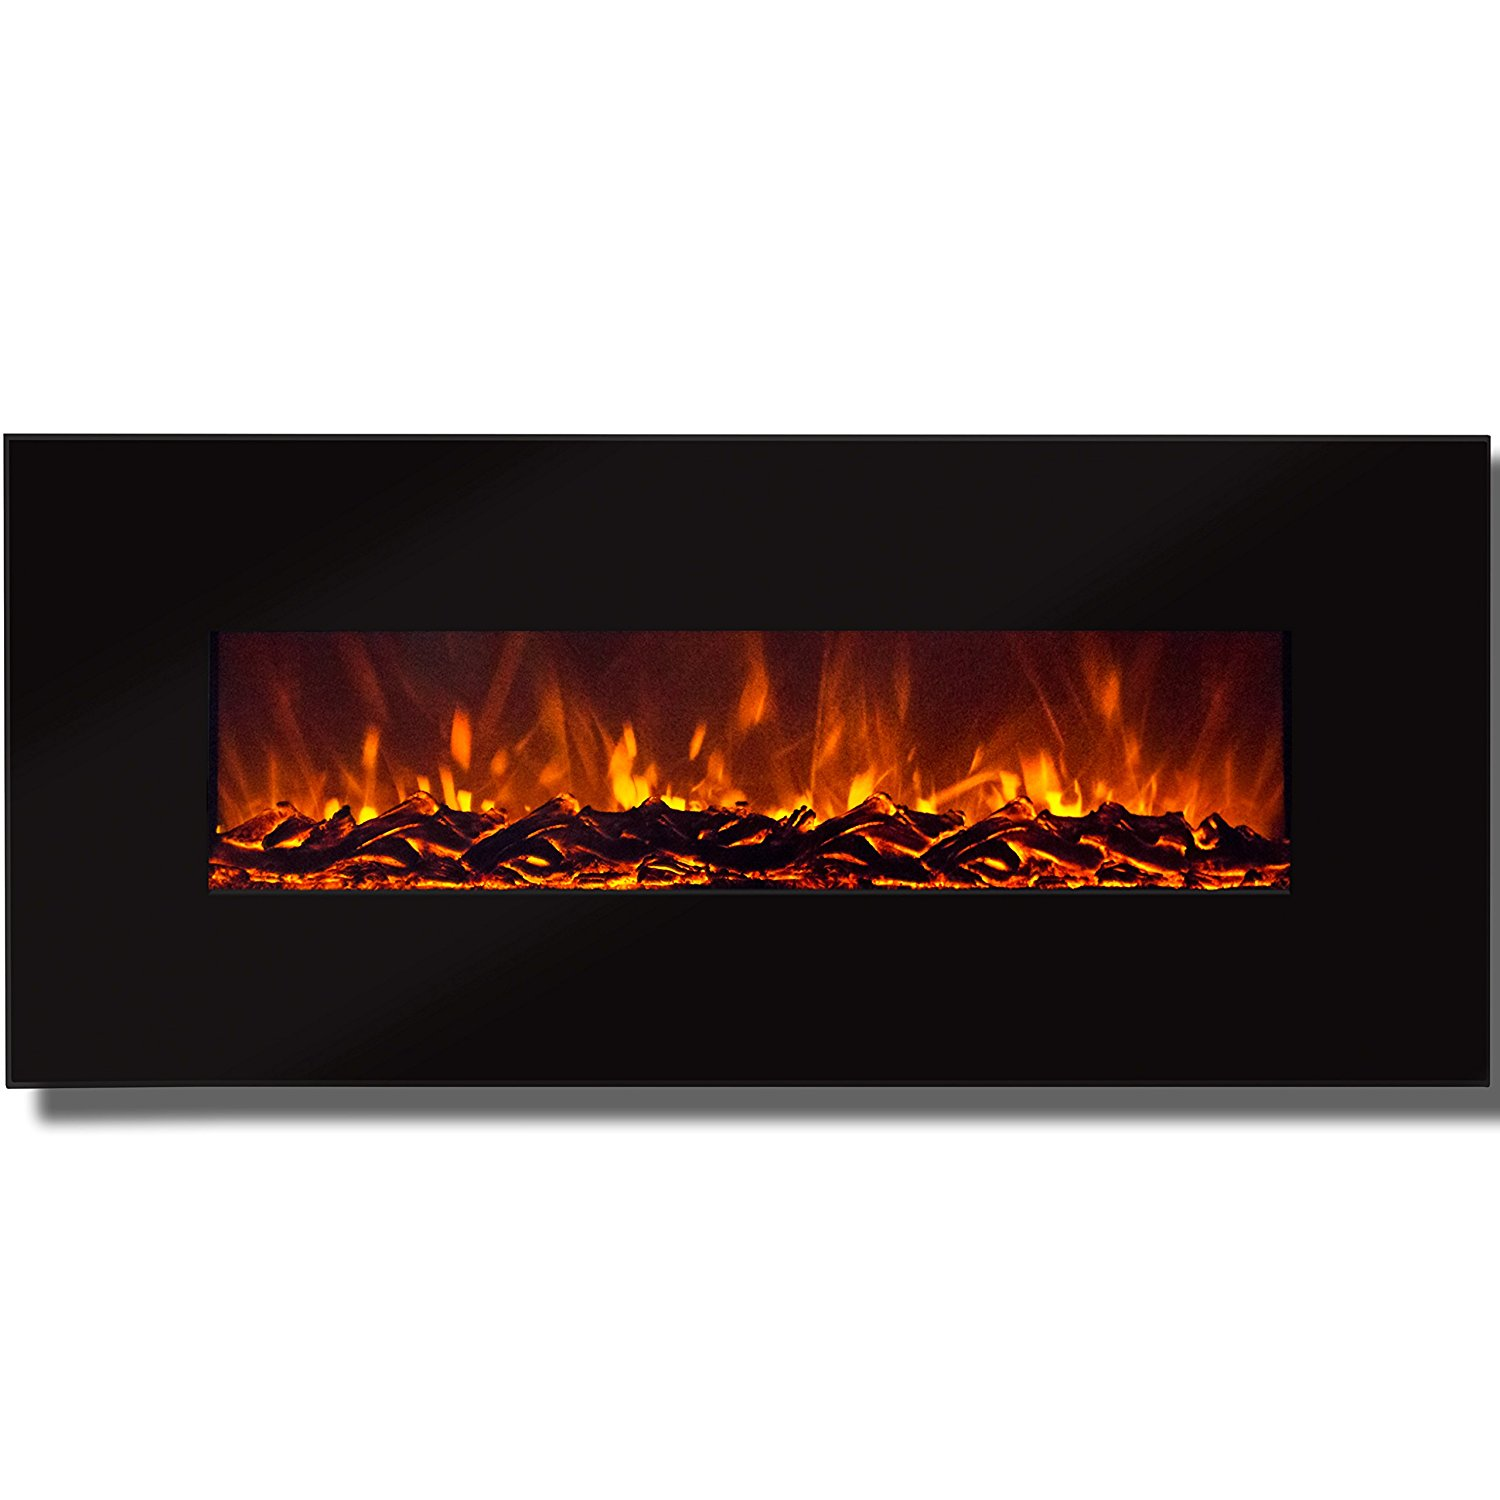 "Best Choice Products 50"" Electric Wall Mounted Fireplace Heater Smokeless Ventless Adjustable Heat"